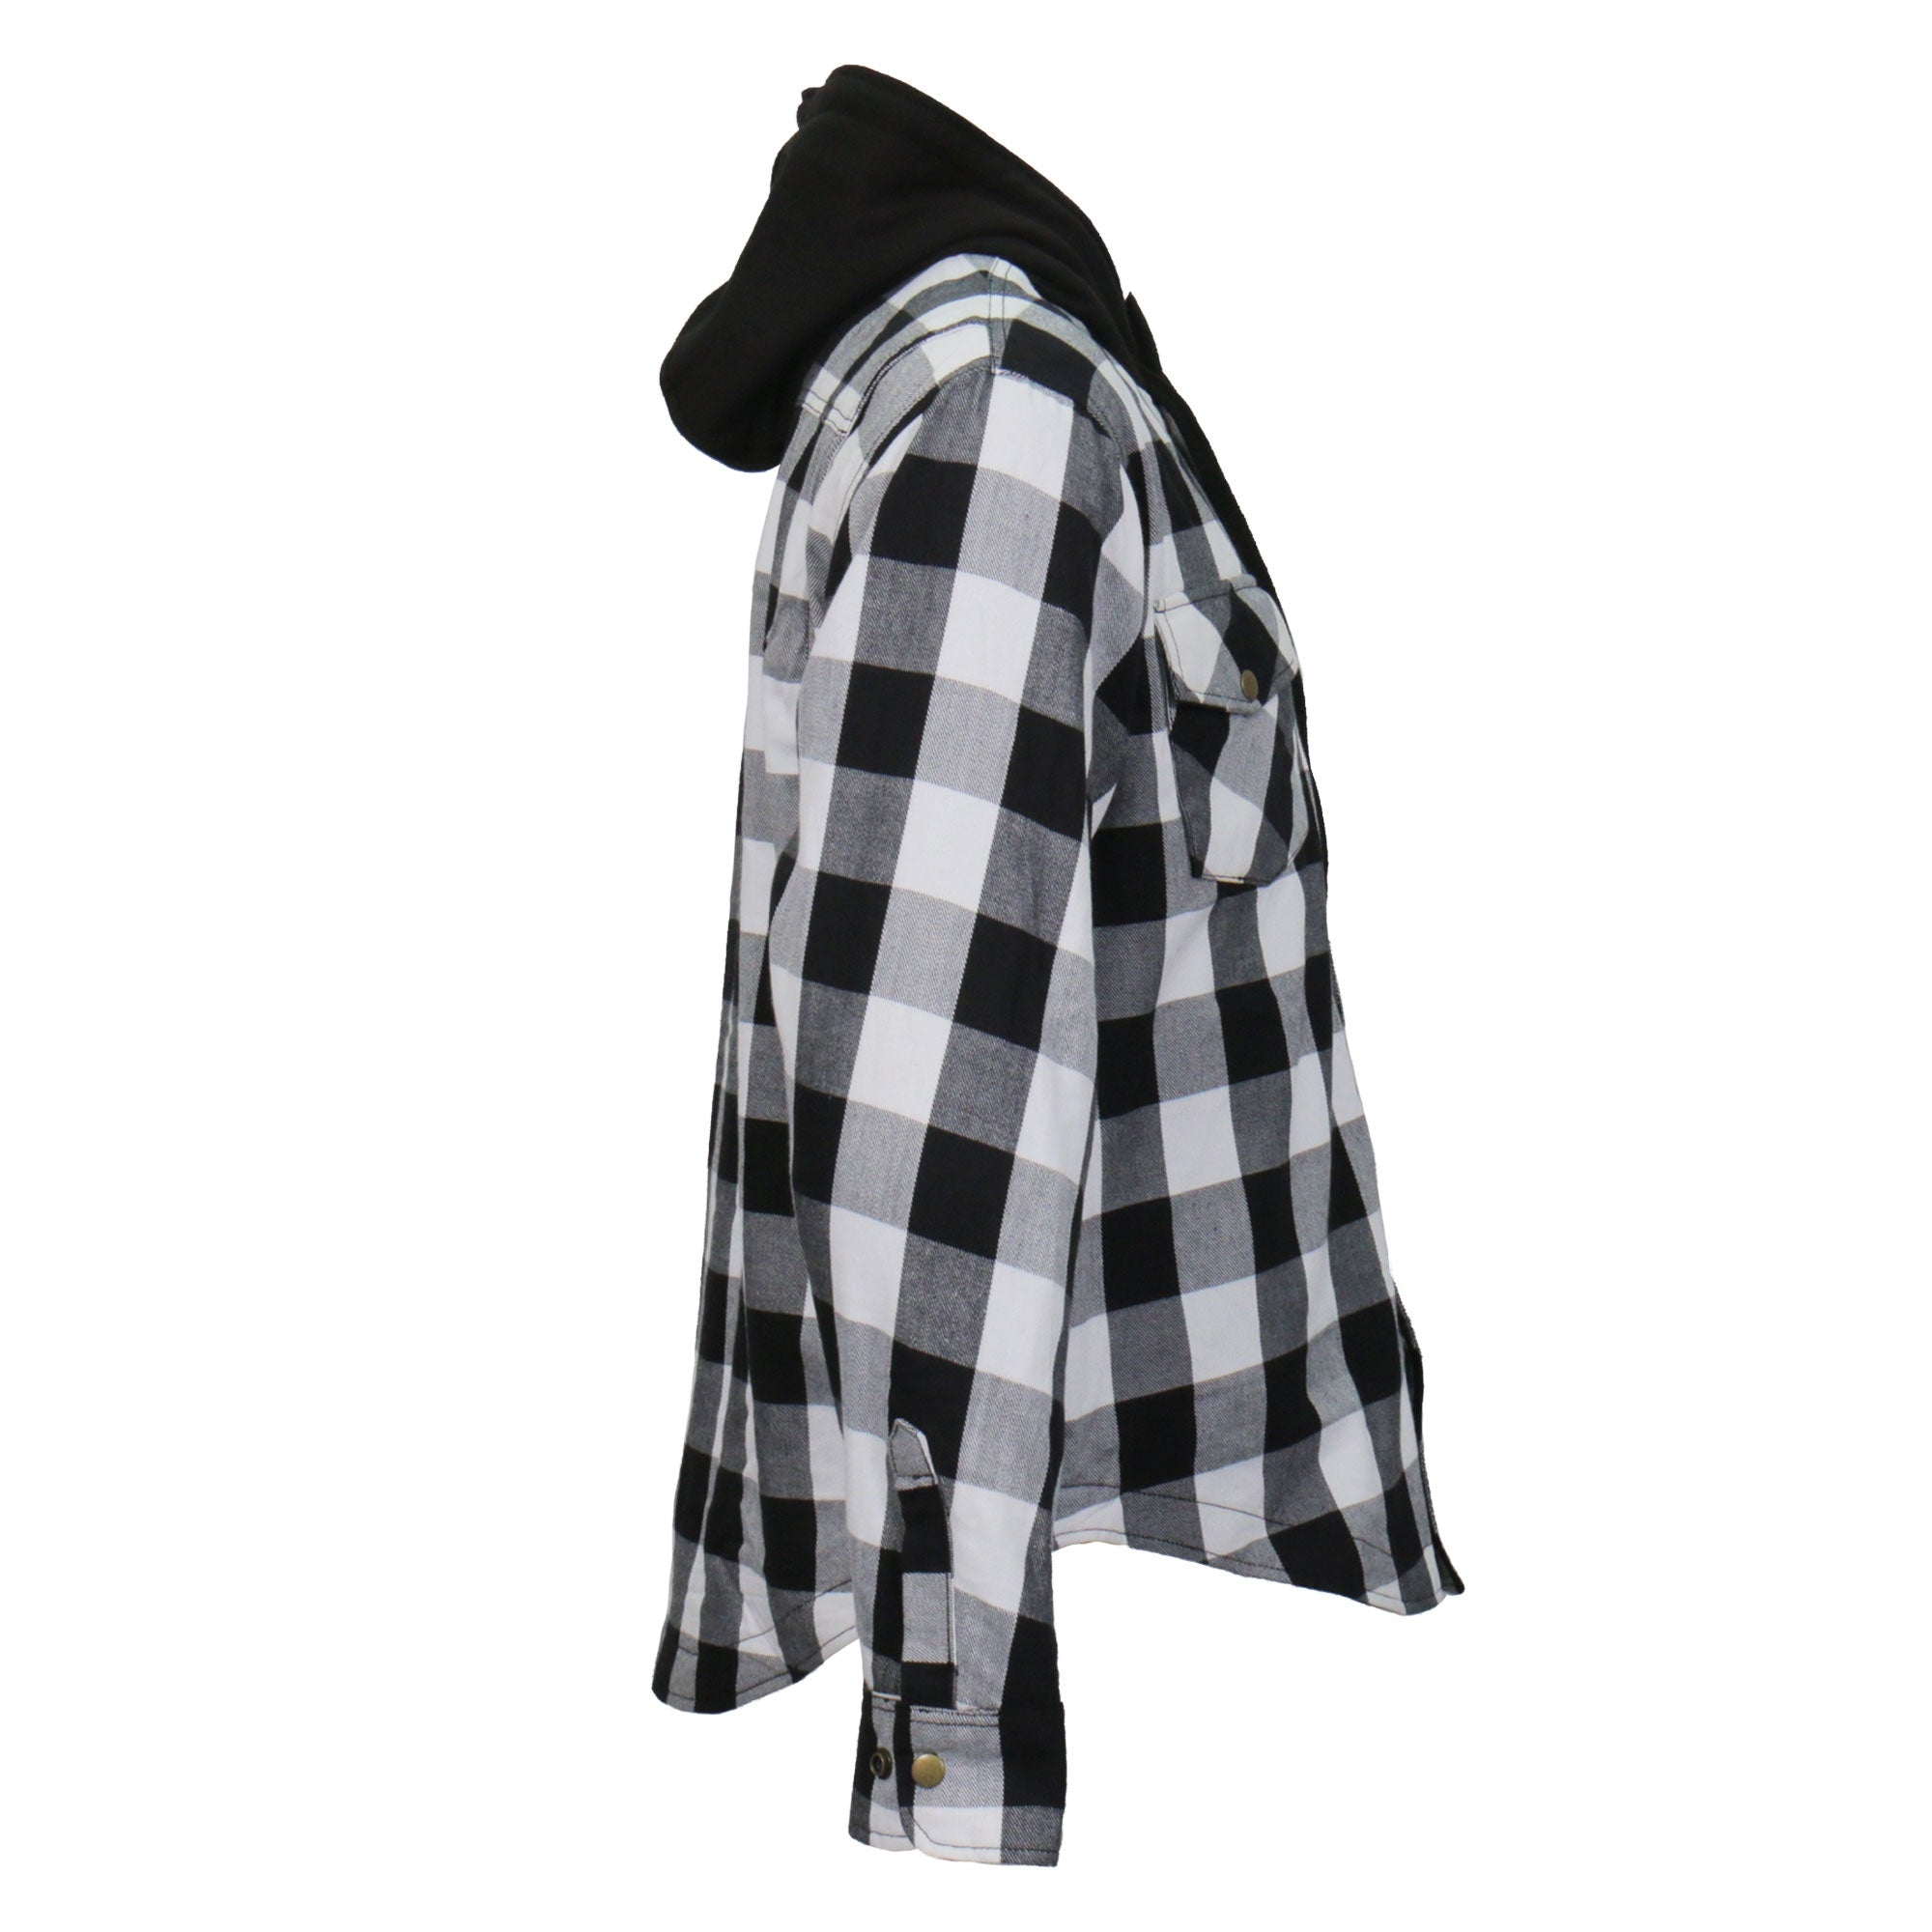 Hot Leathers Black and White Hooded Armored Flannel Jacket